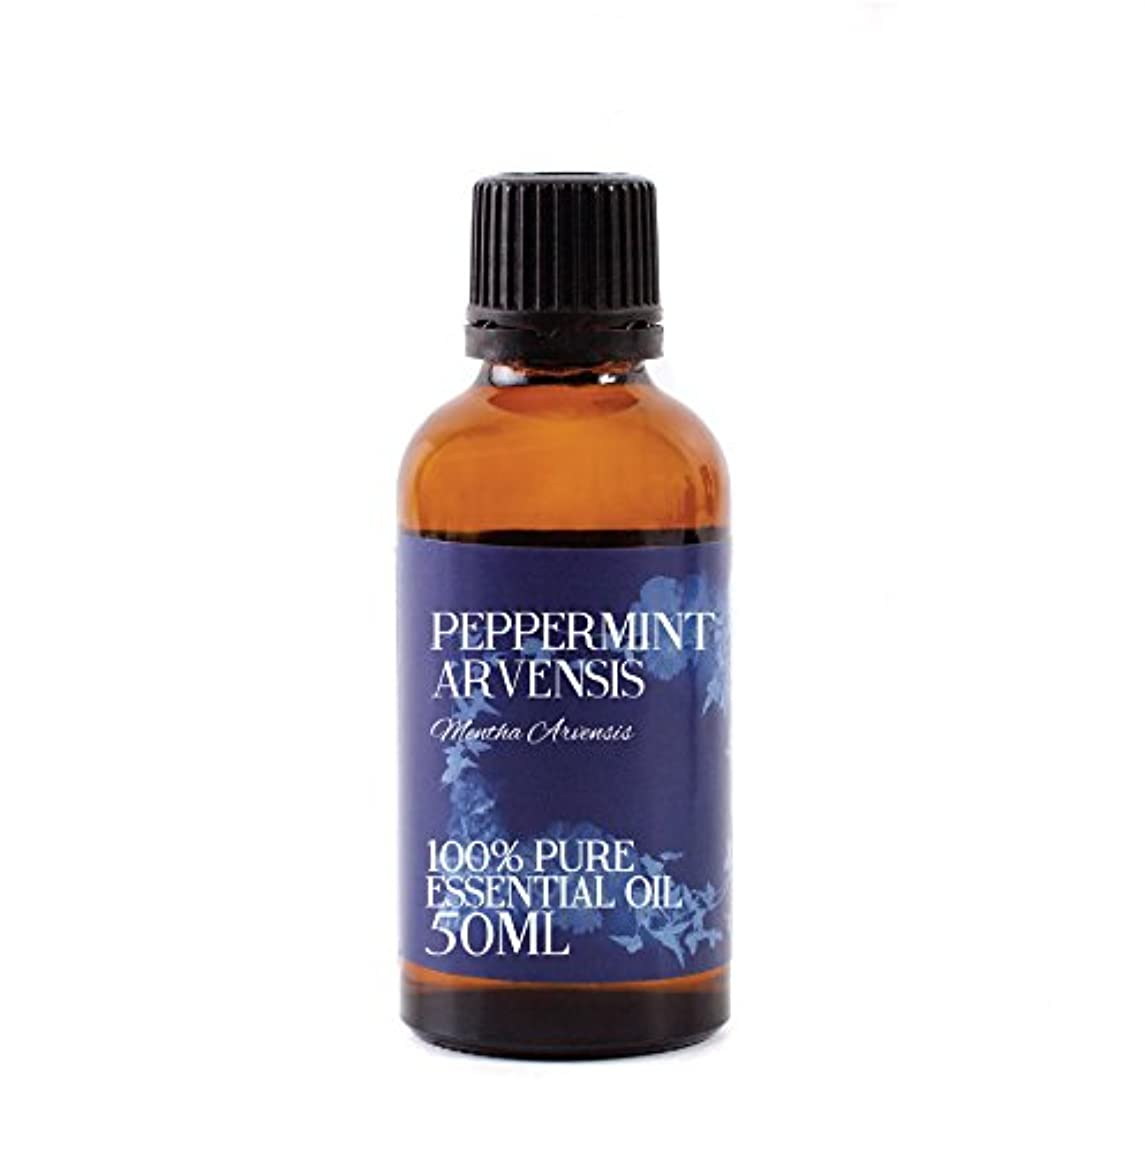 Mystic Moments | Peppermint Arvensis Essential Oil - 50ml - 100% Pure